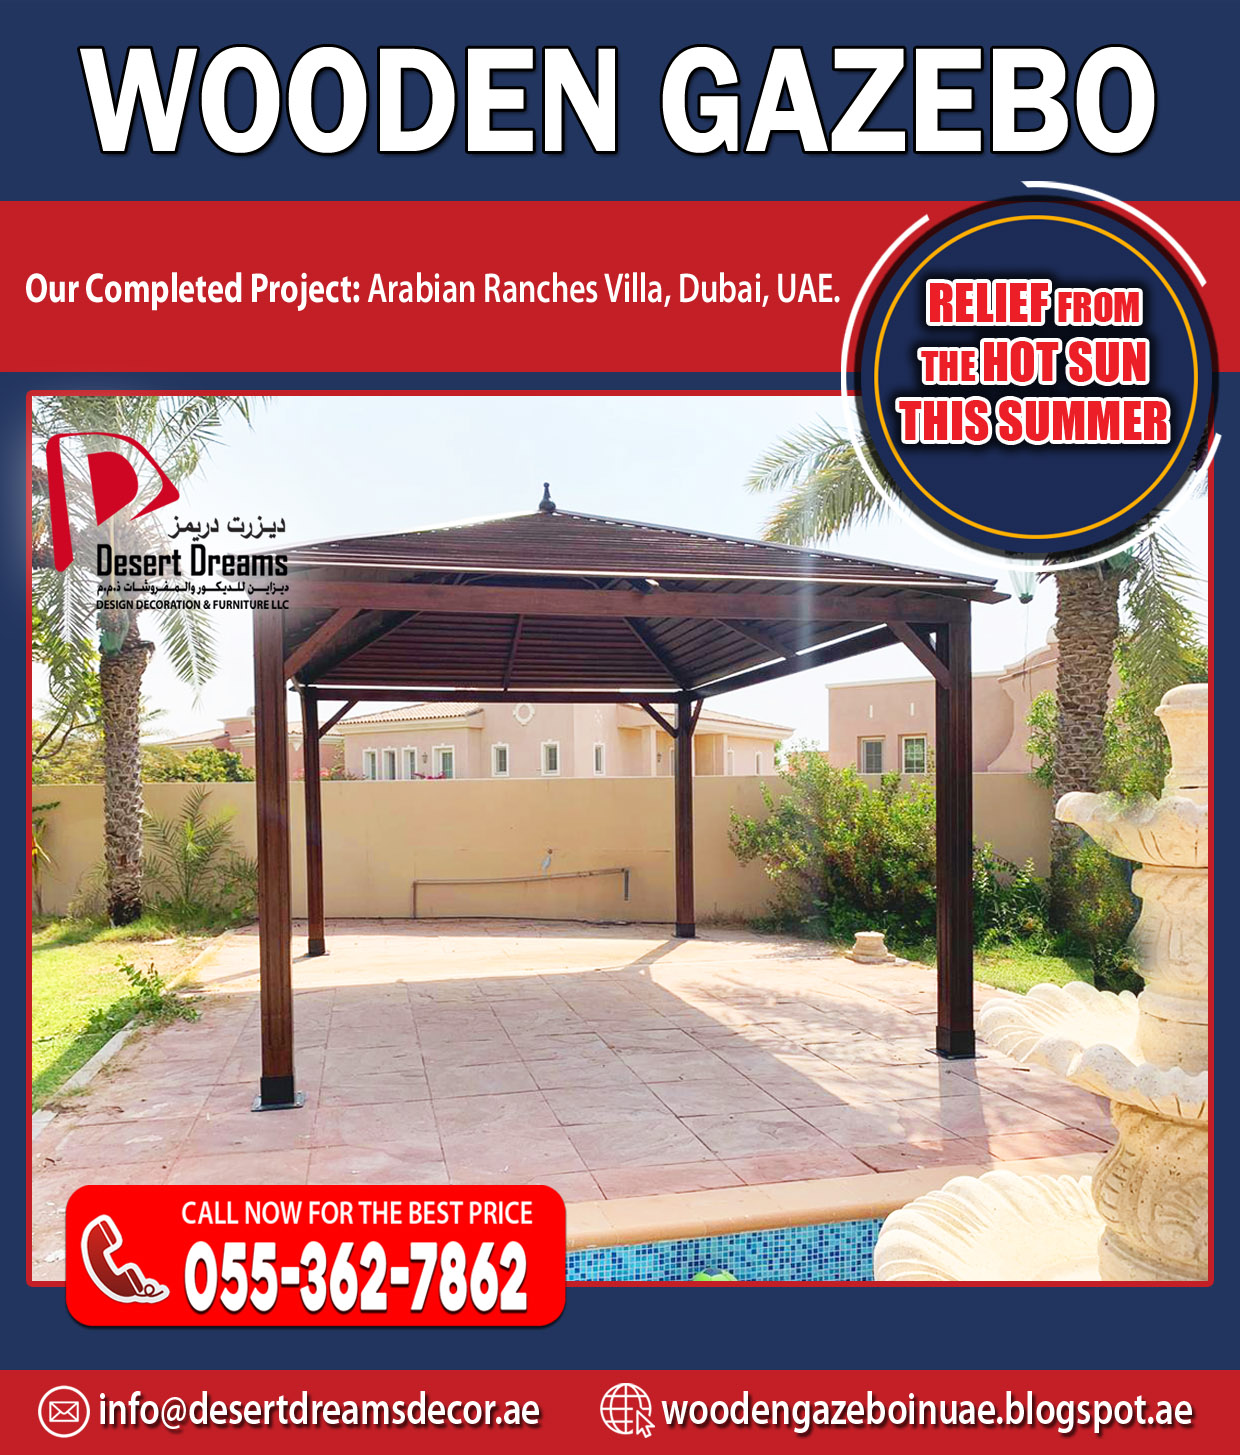 Wooden Gazebo in Dubai, UAE-3.jpg